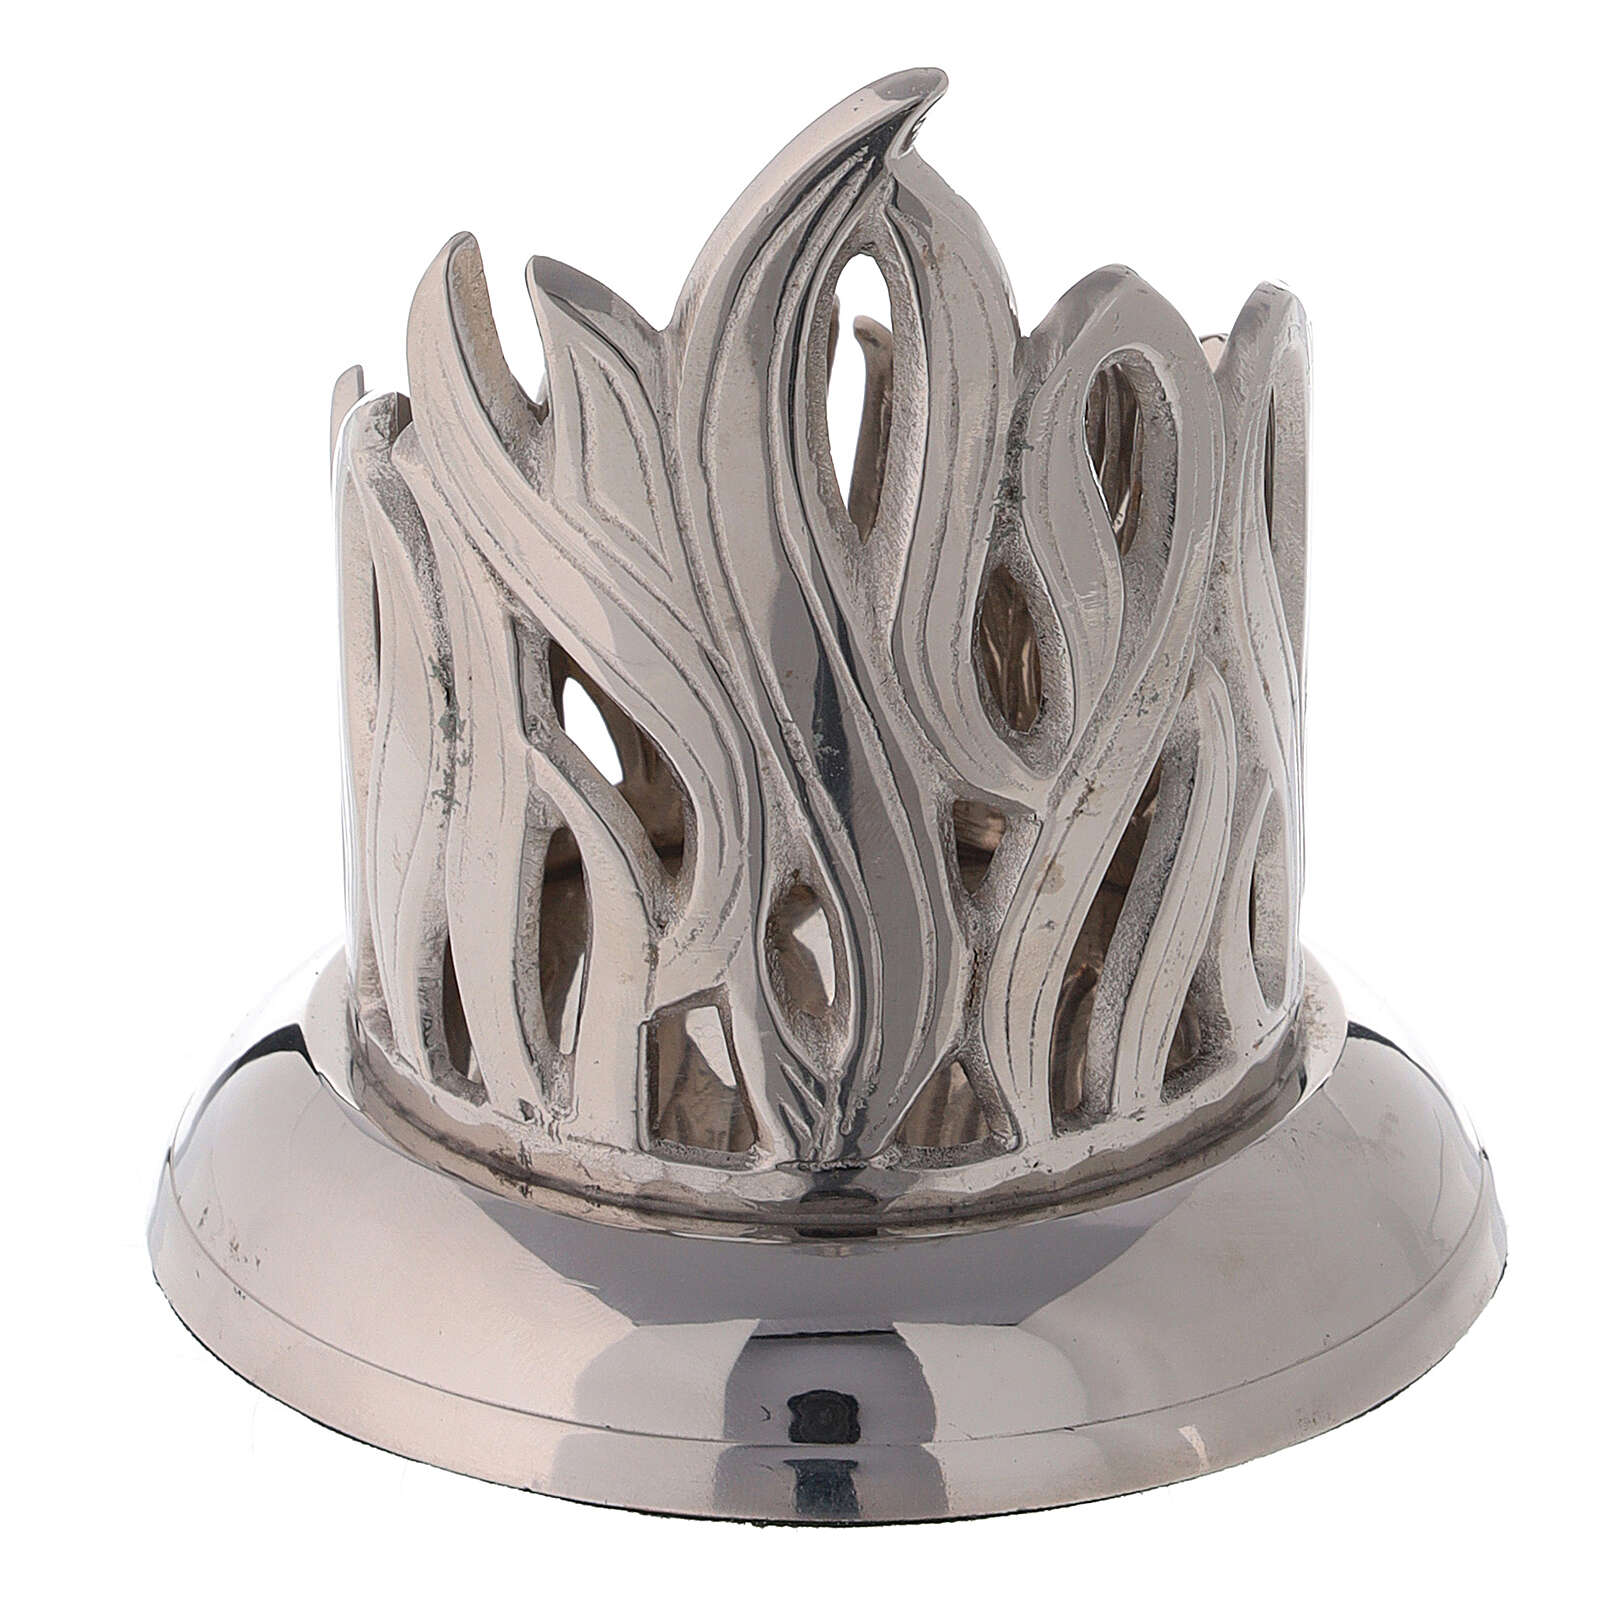 Flame pattern candlestick nickel-plated brass diameter 2 1/2 in 4